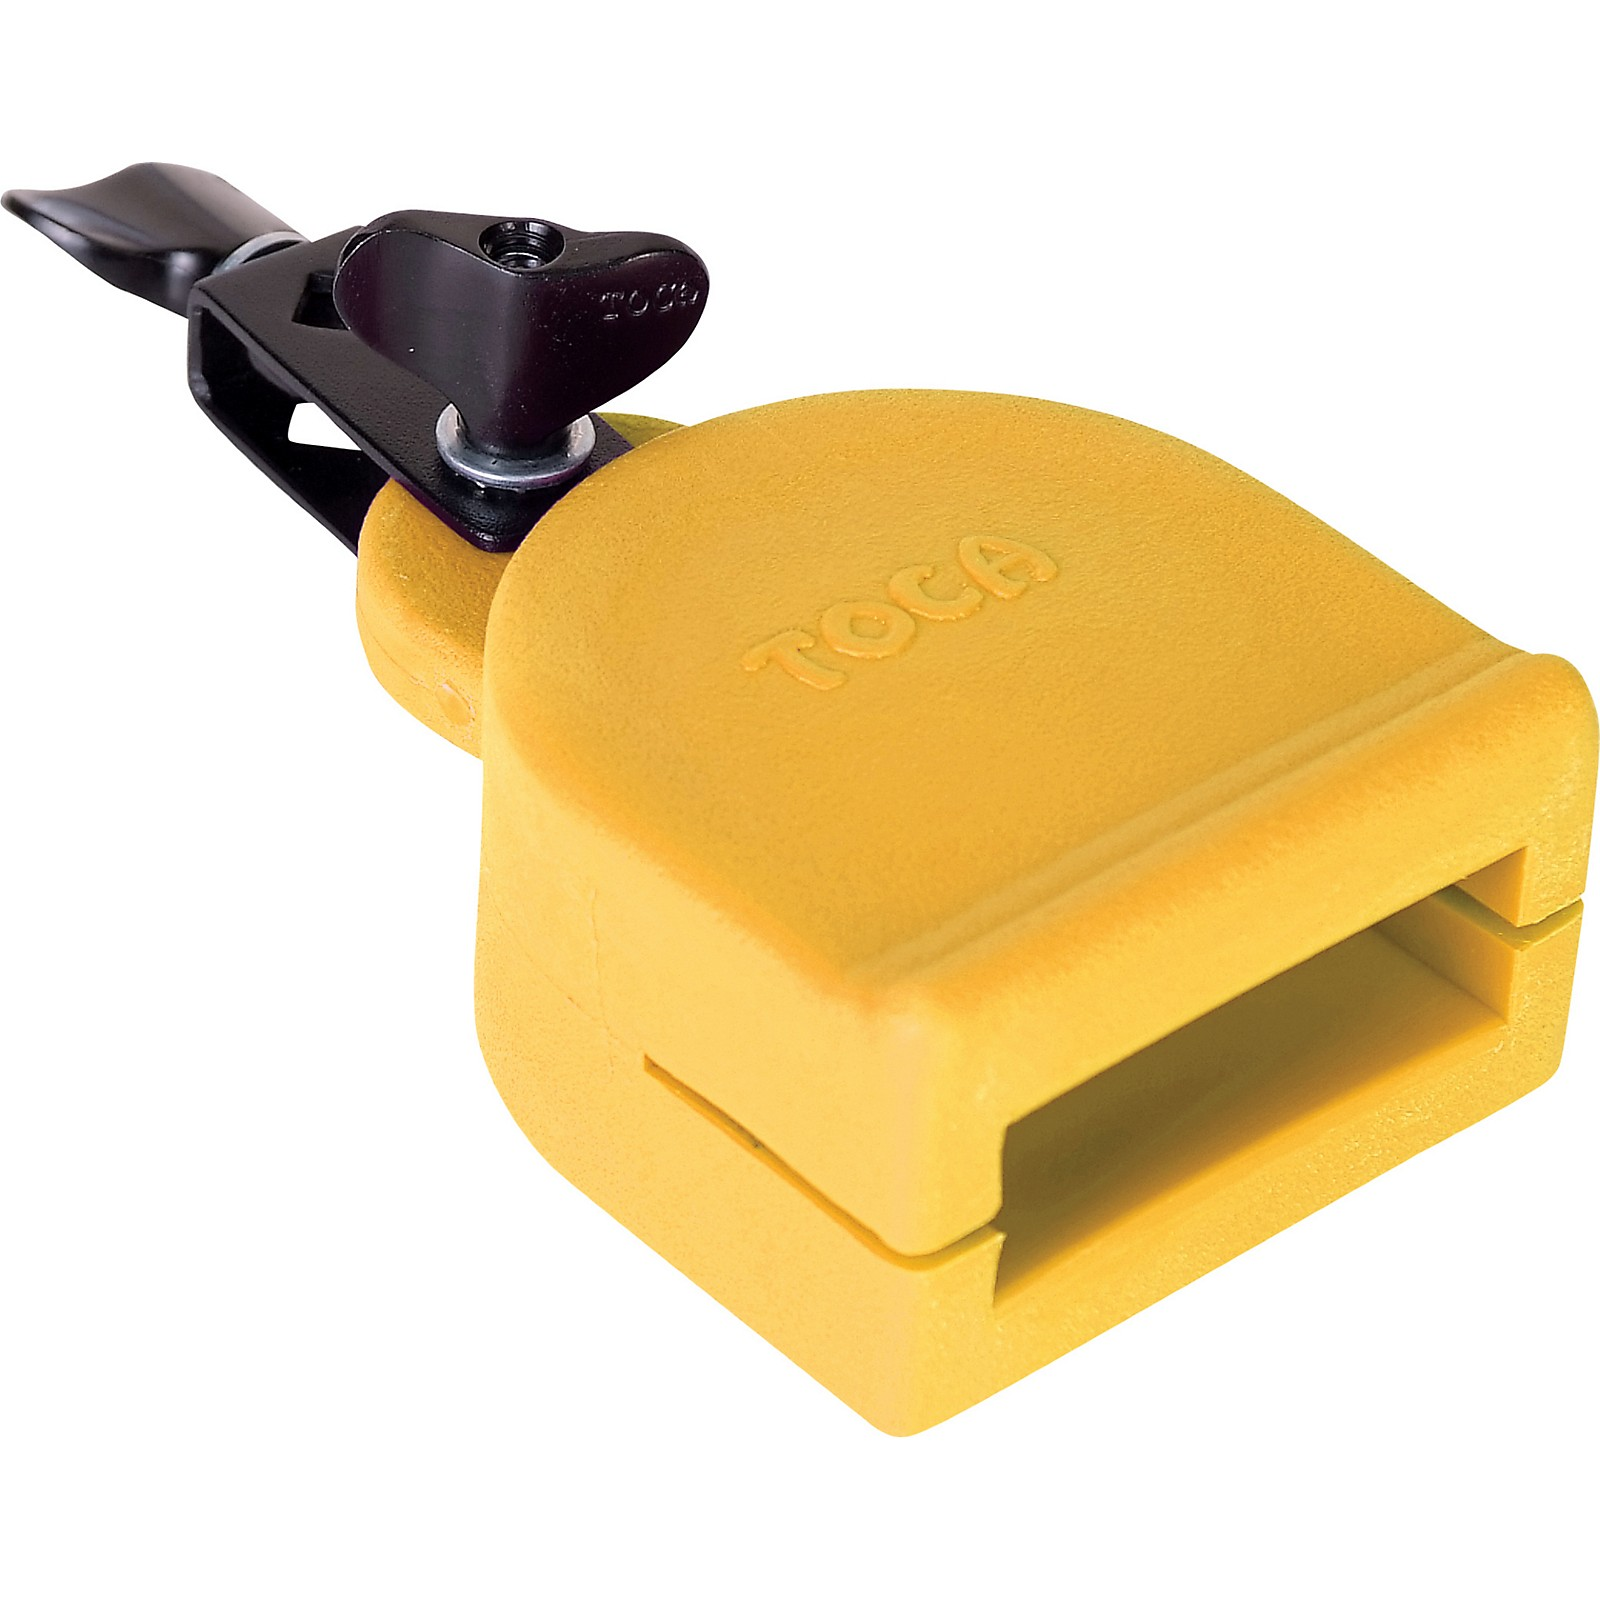 Toca 3/2 Clave Block with Mount